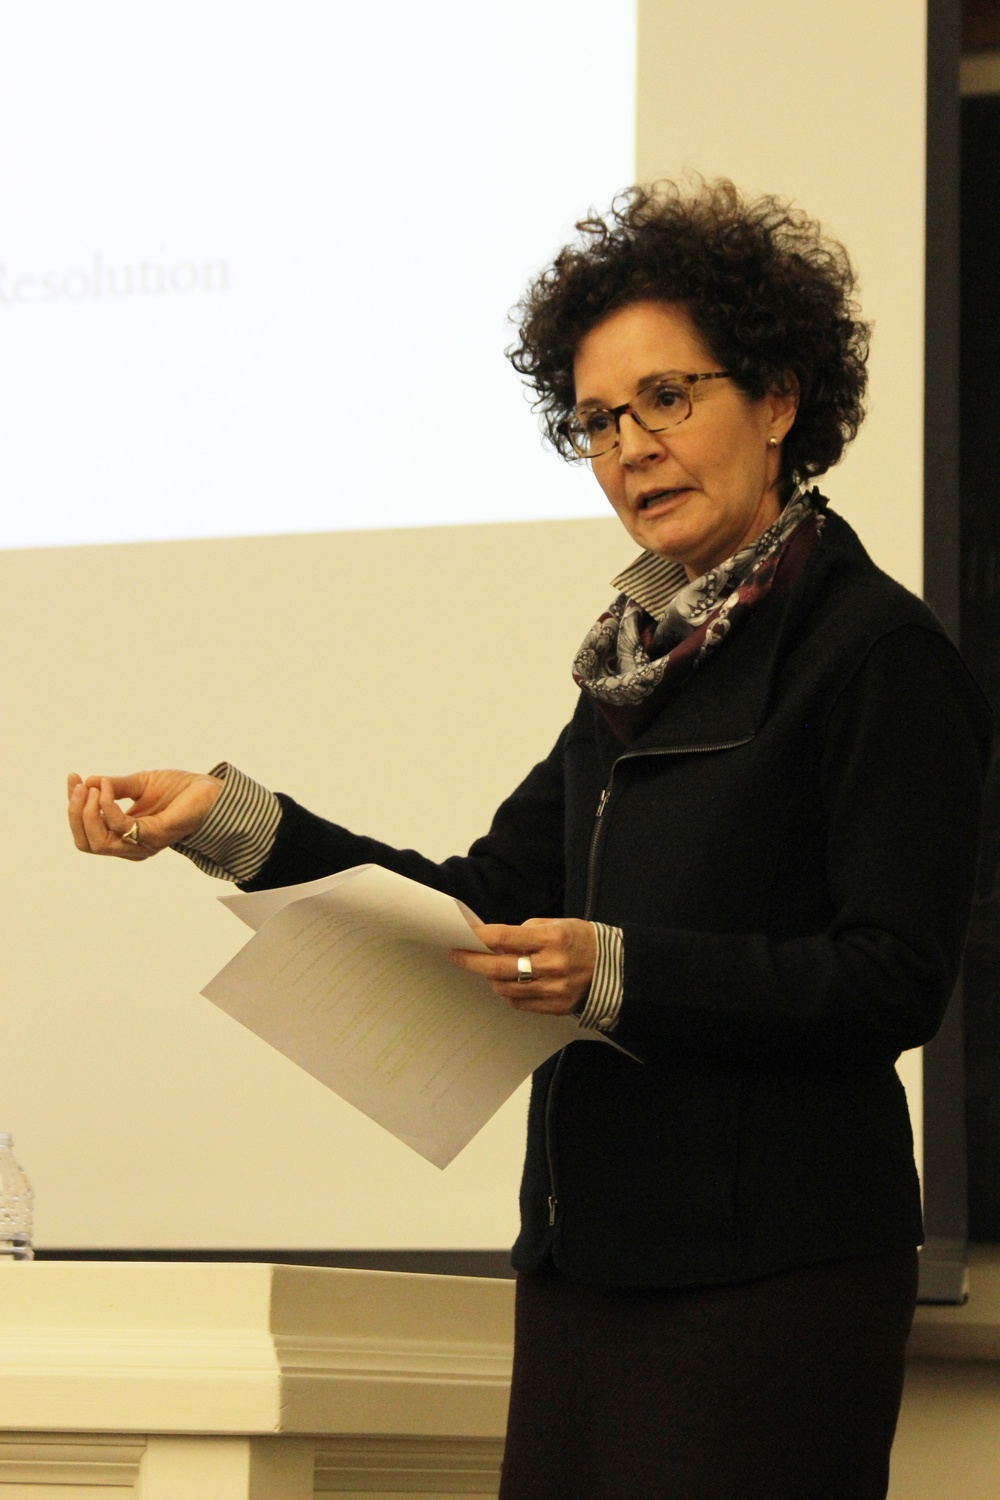 Title IX Officer Mia Karvonides explains Harvard University policy concerning unwelcome sexual contact at a town hall hosted by the UC. Karvonides later answered questions from students and undergraduate council members.